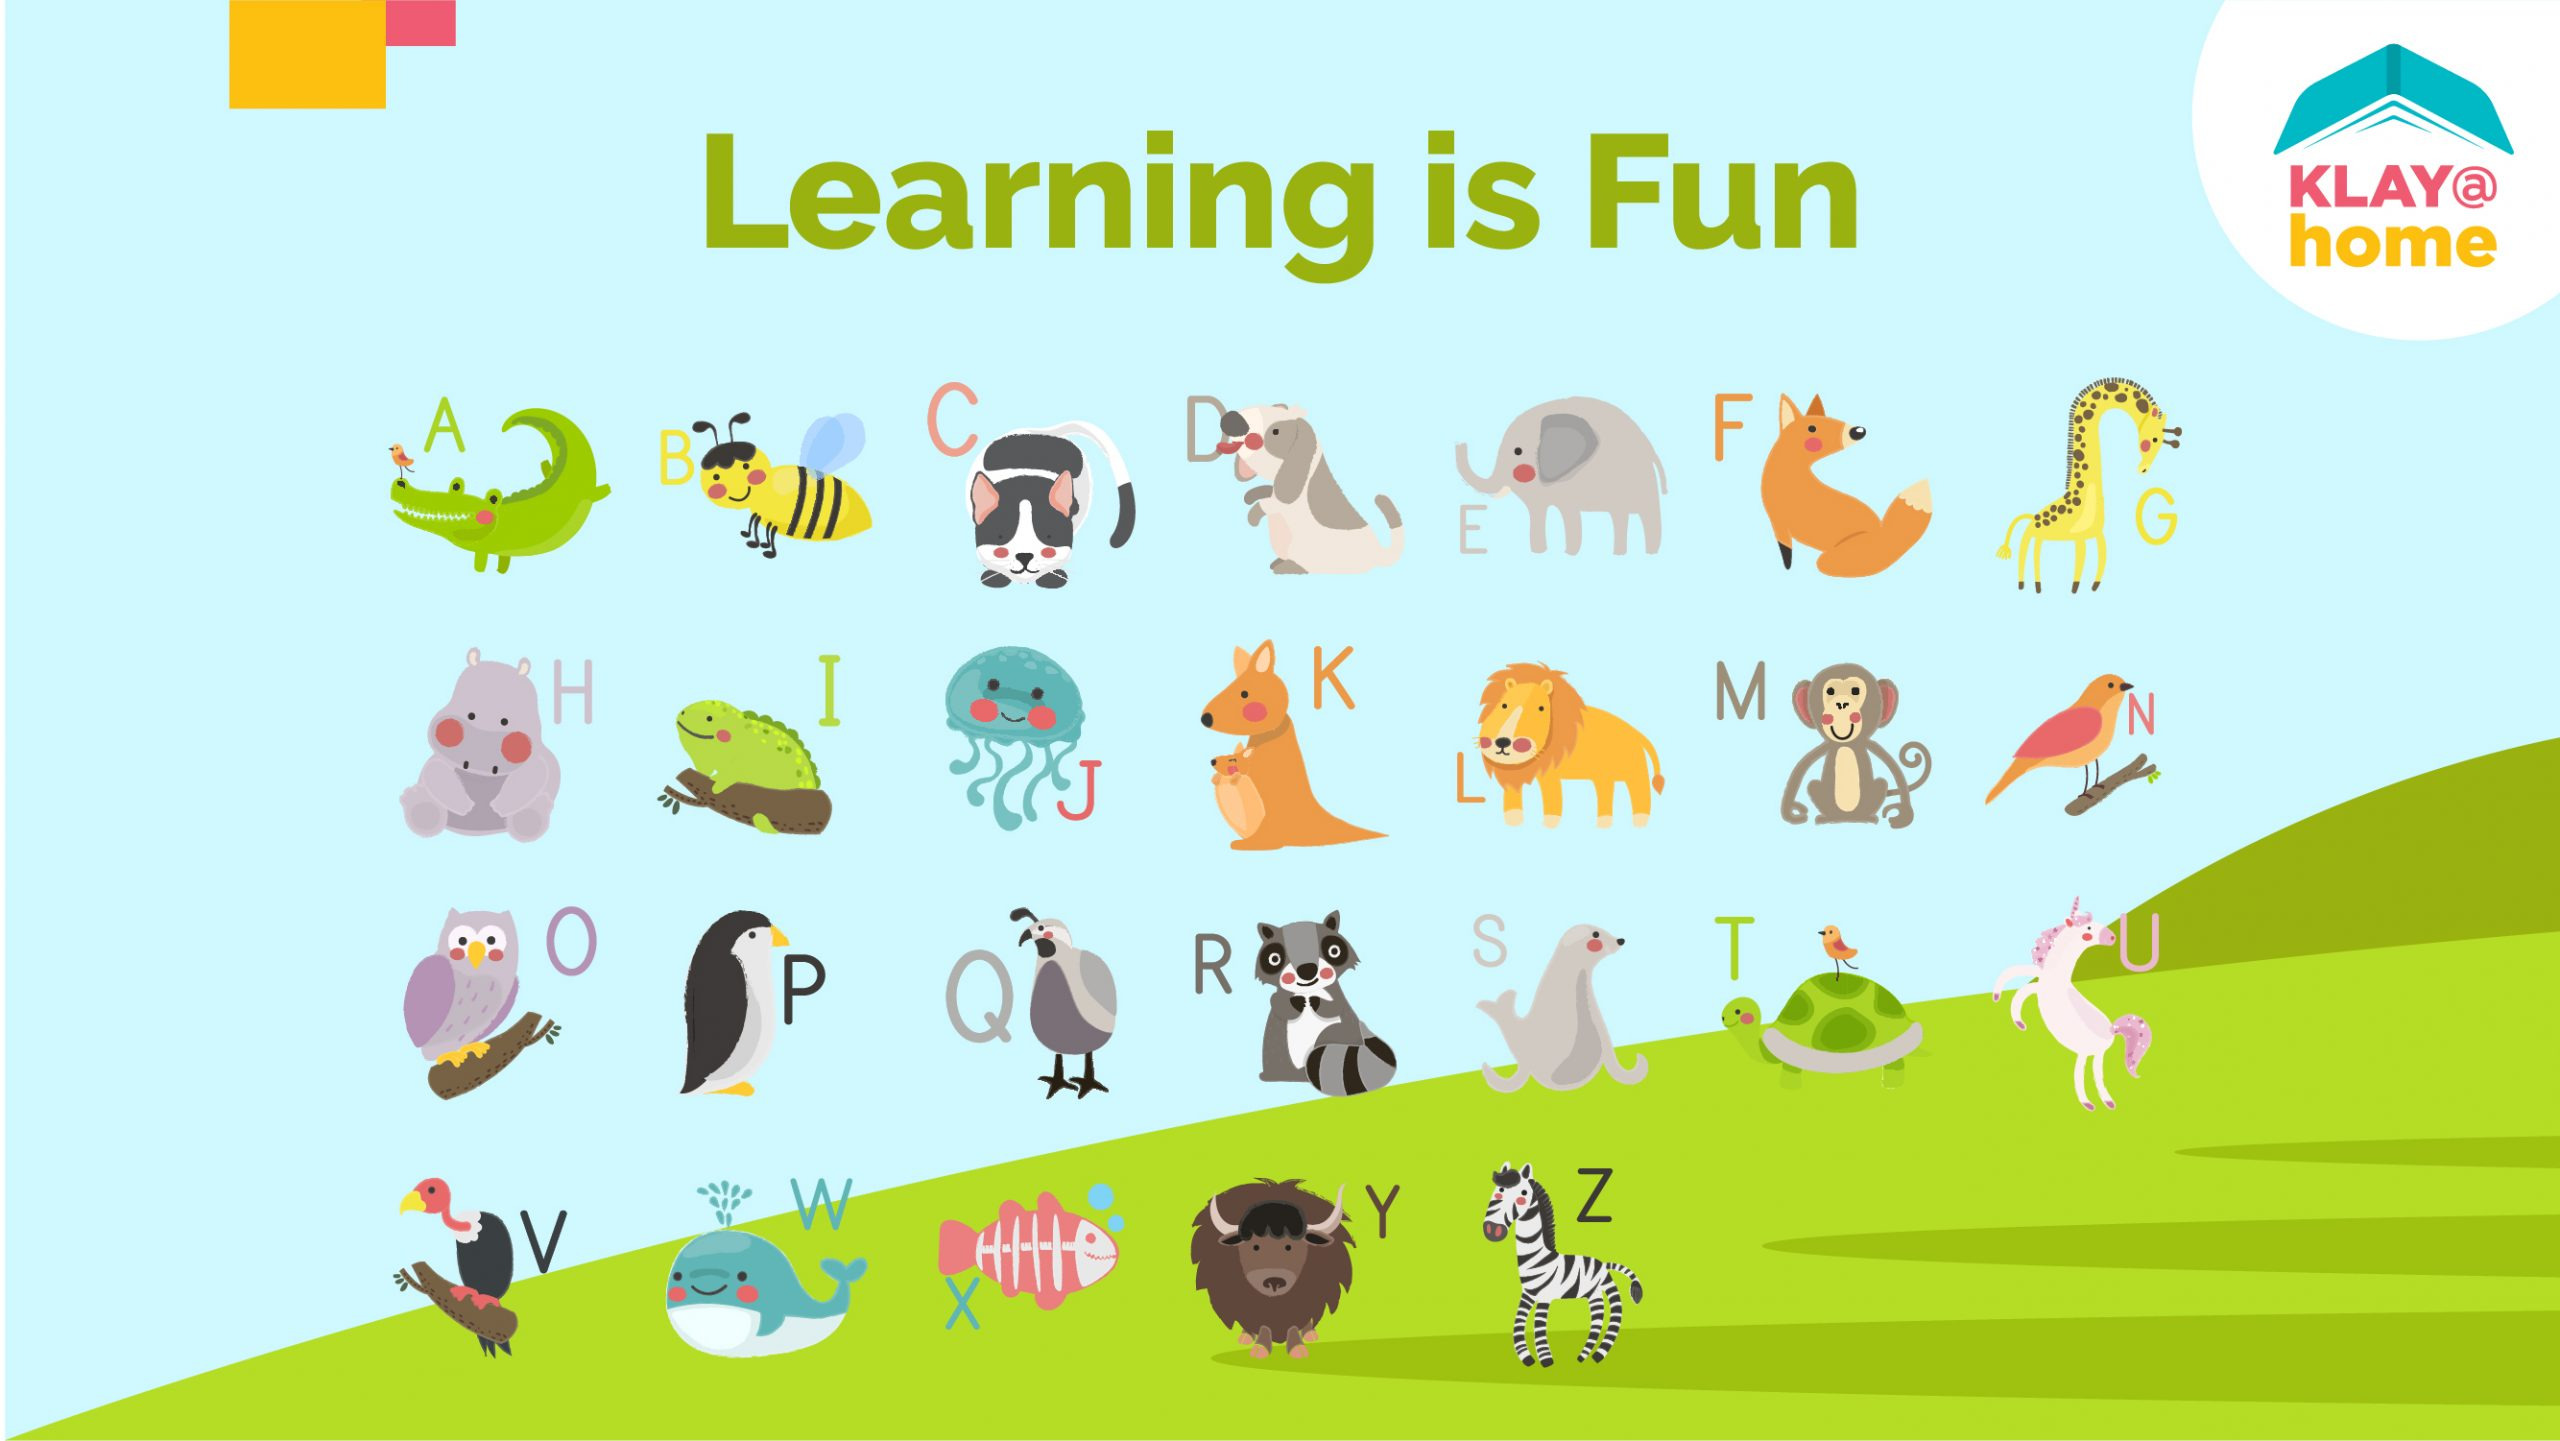 Learning is Fun!